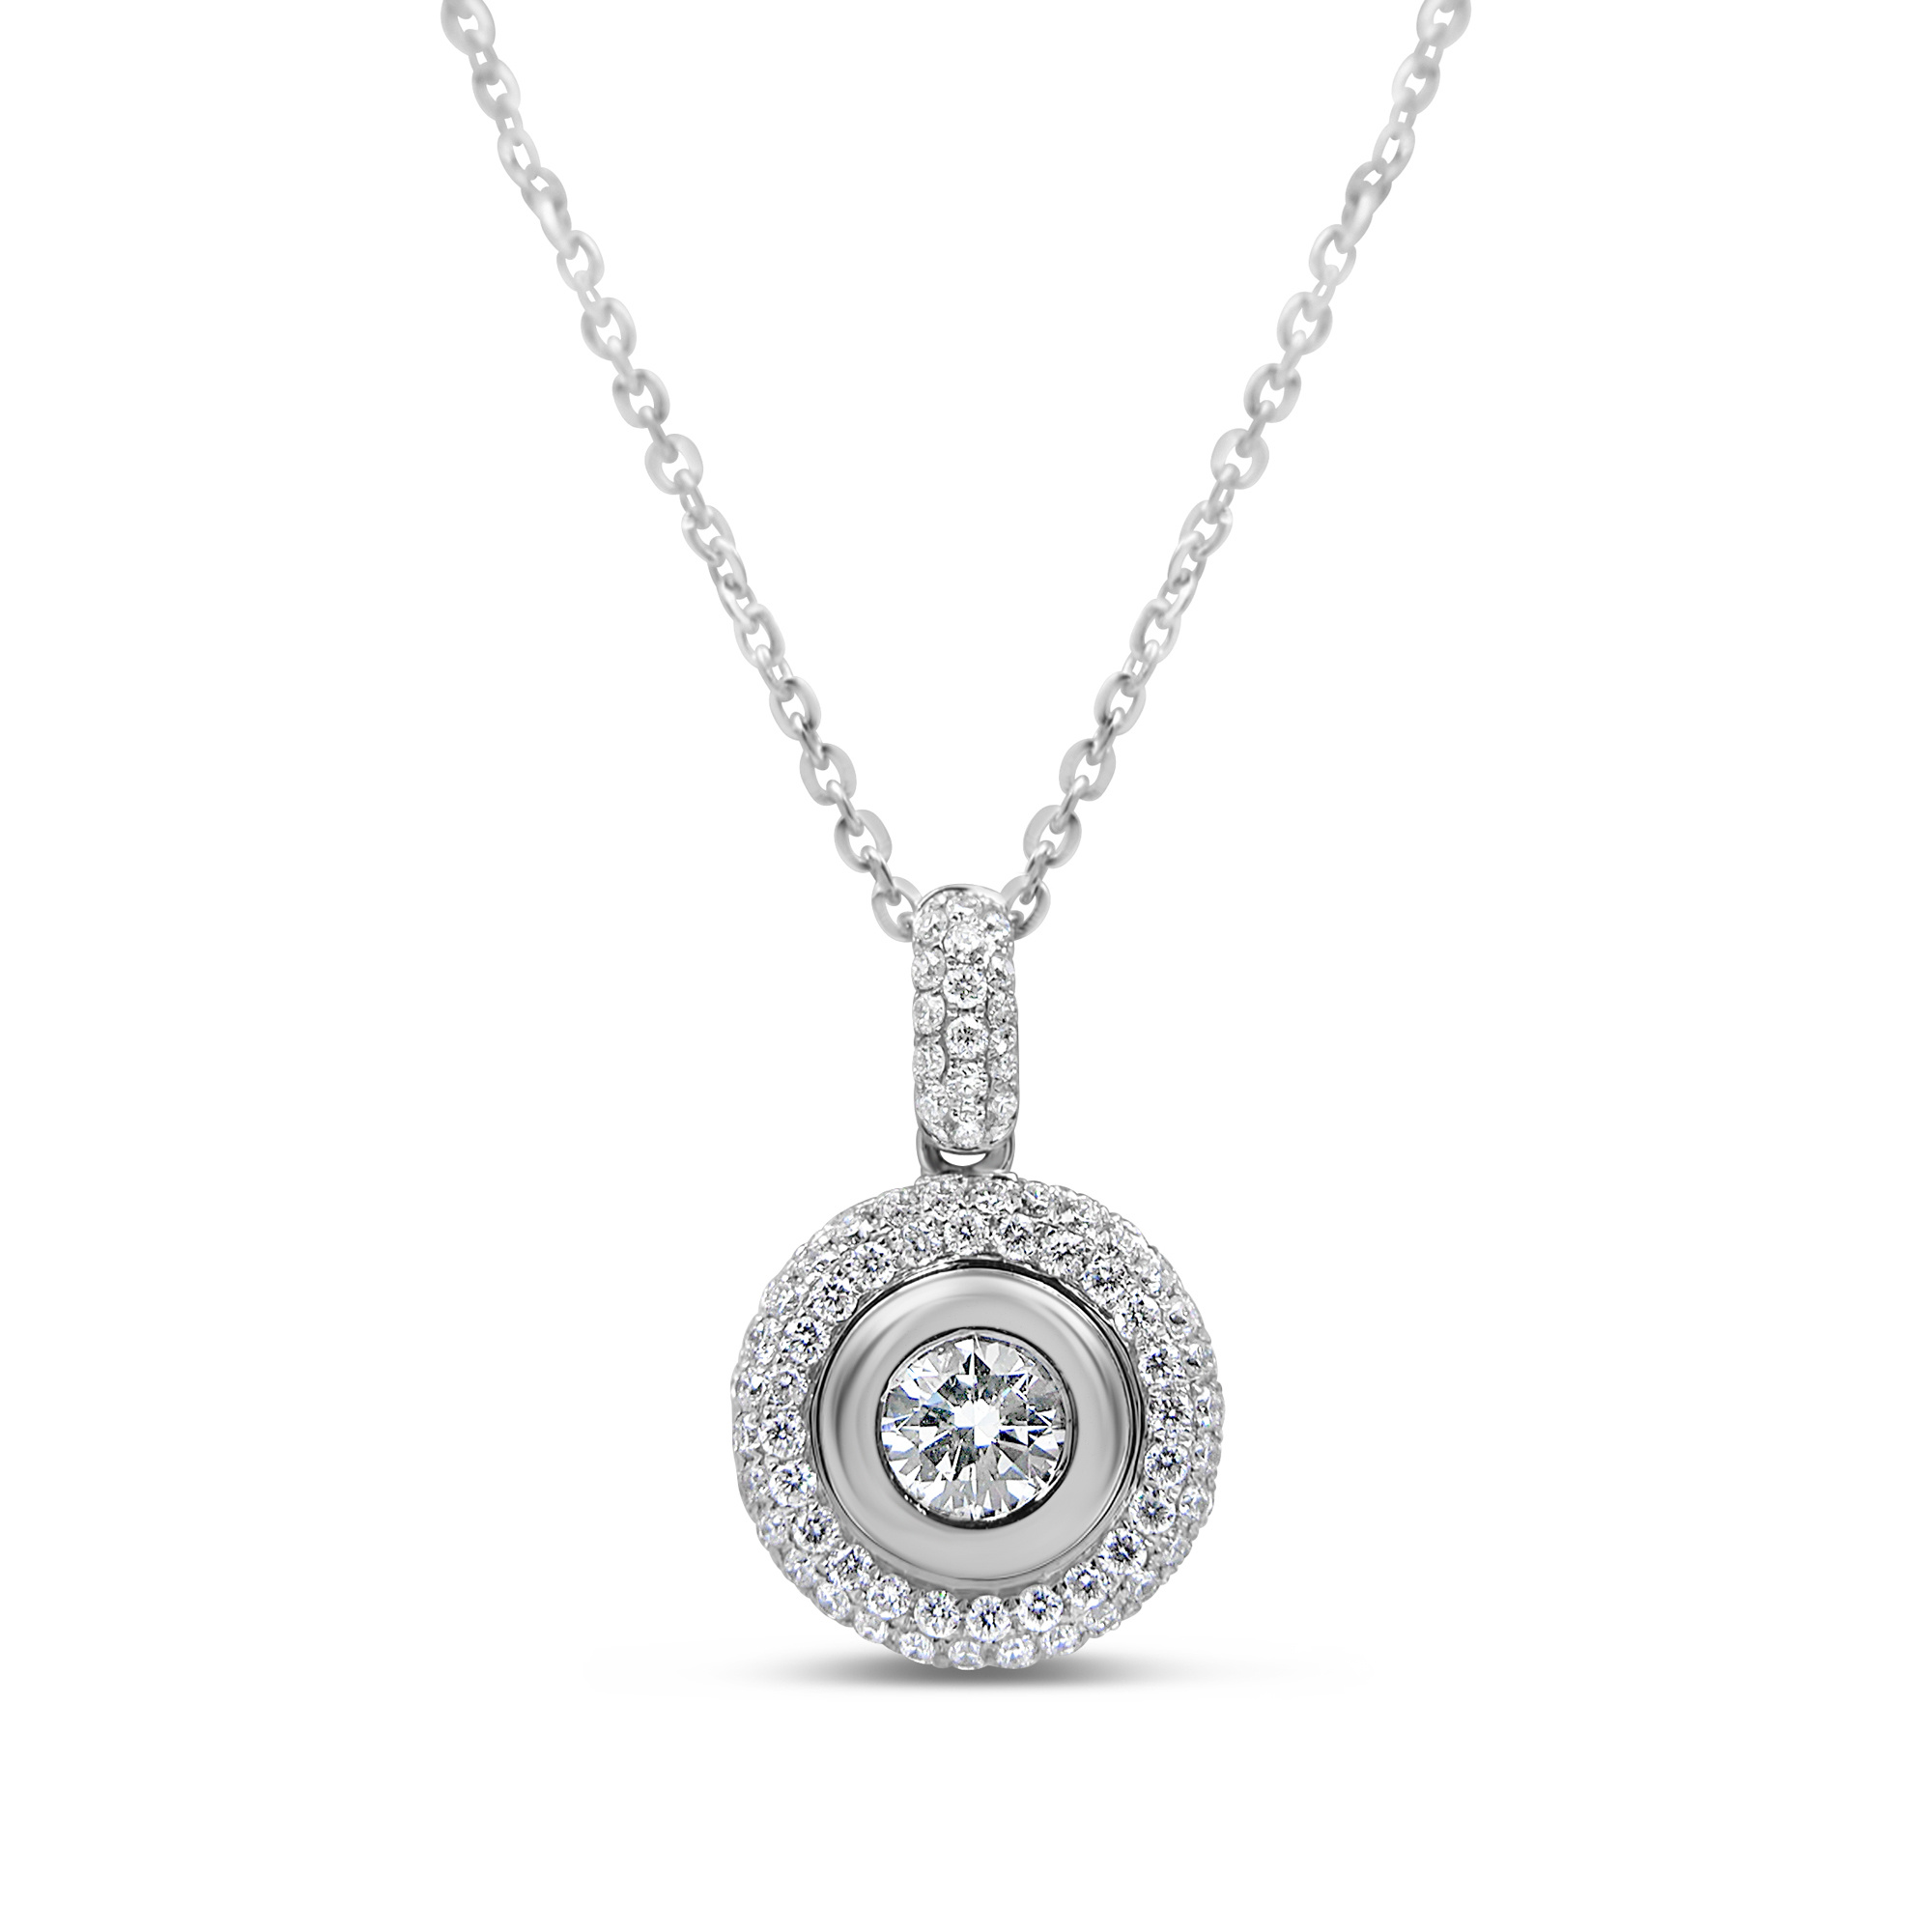 18kt white gold pendant with 0.85 ct diamonds